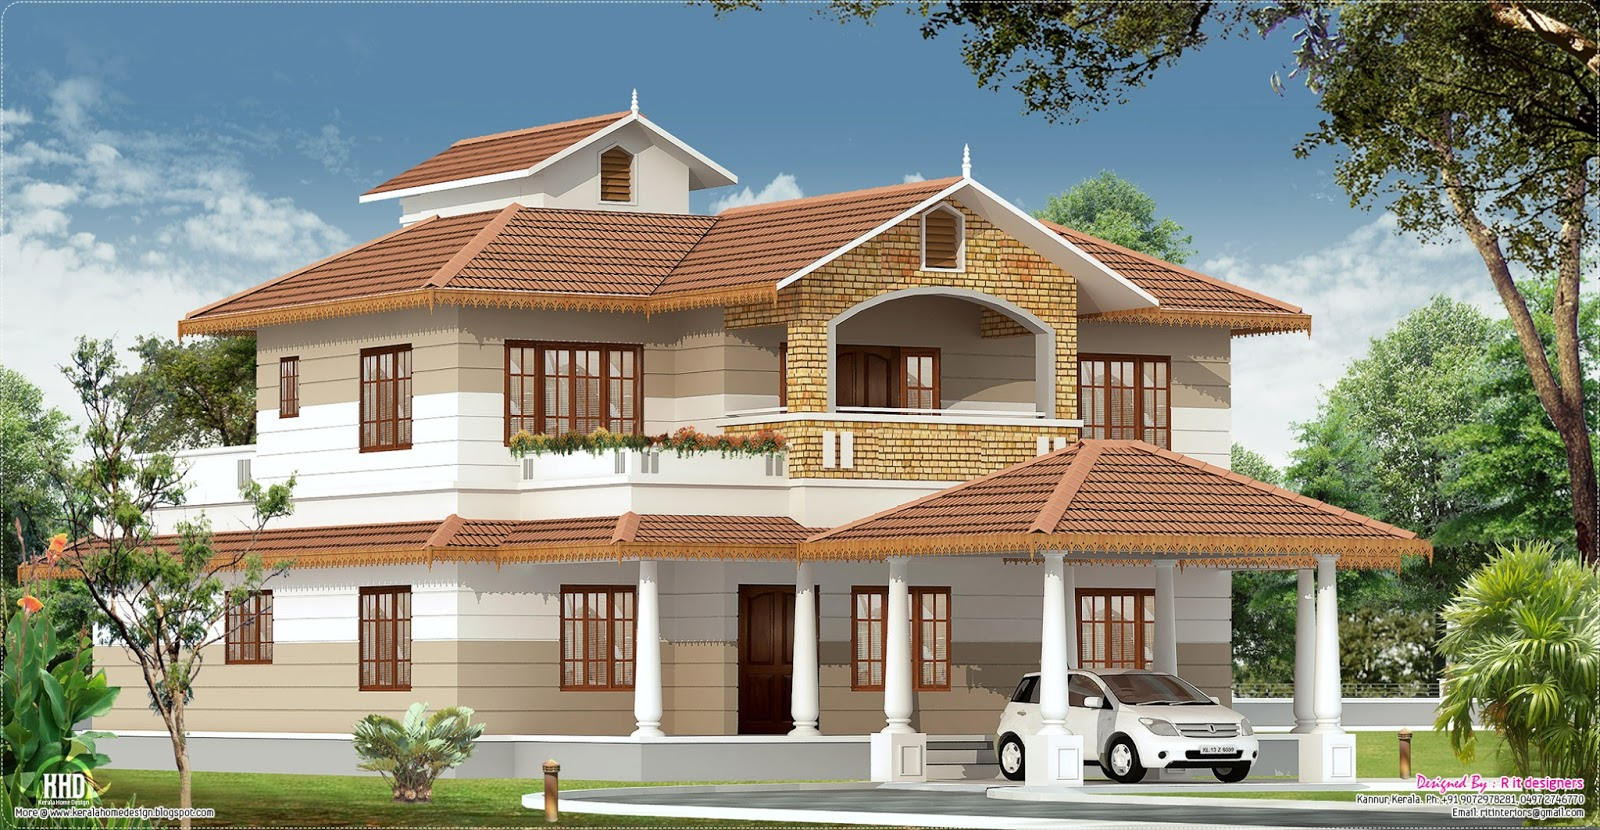 2700 kerala home with interior designs kerala for Kerala house models and plans